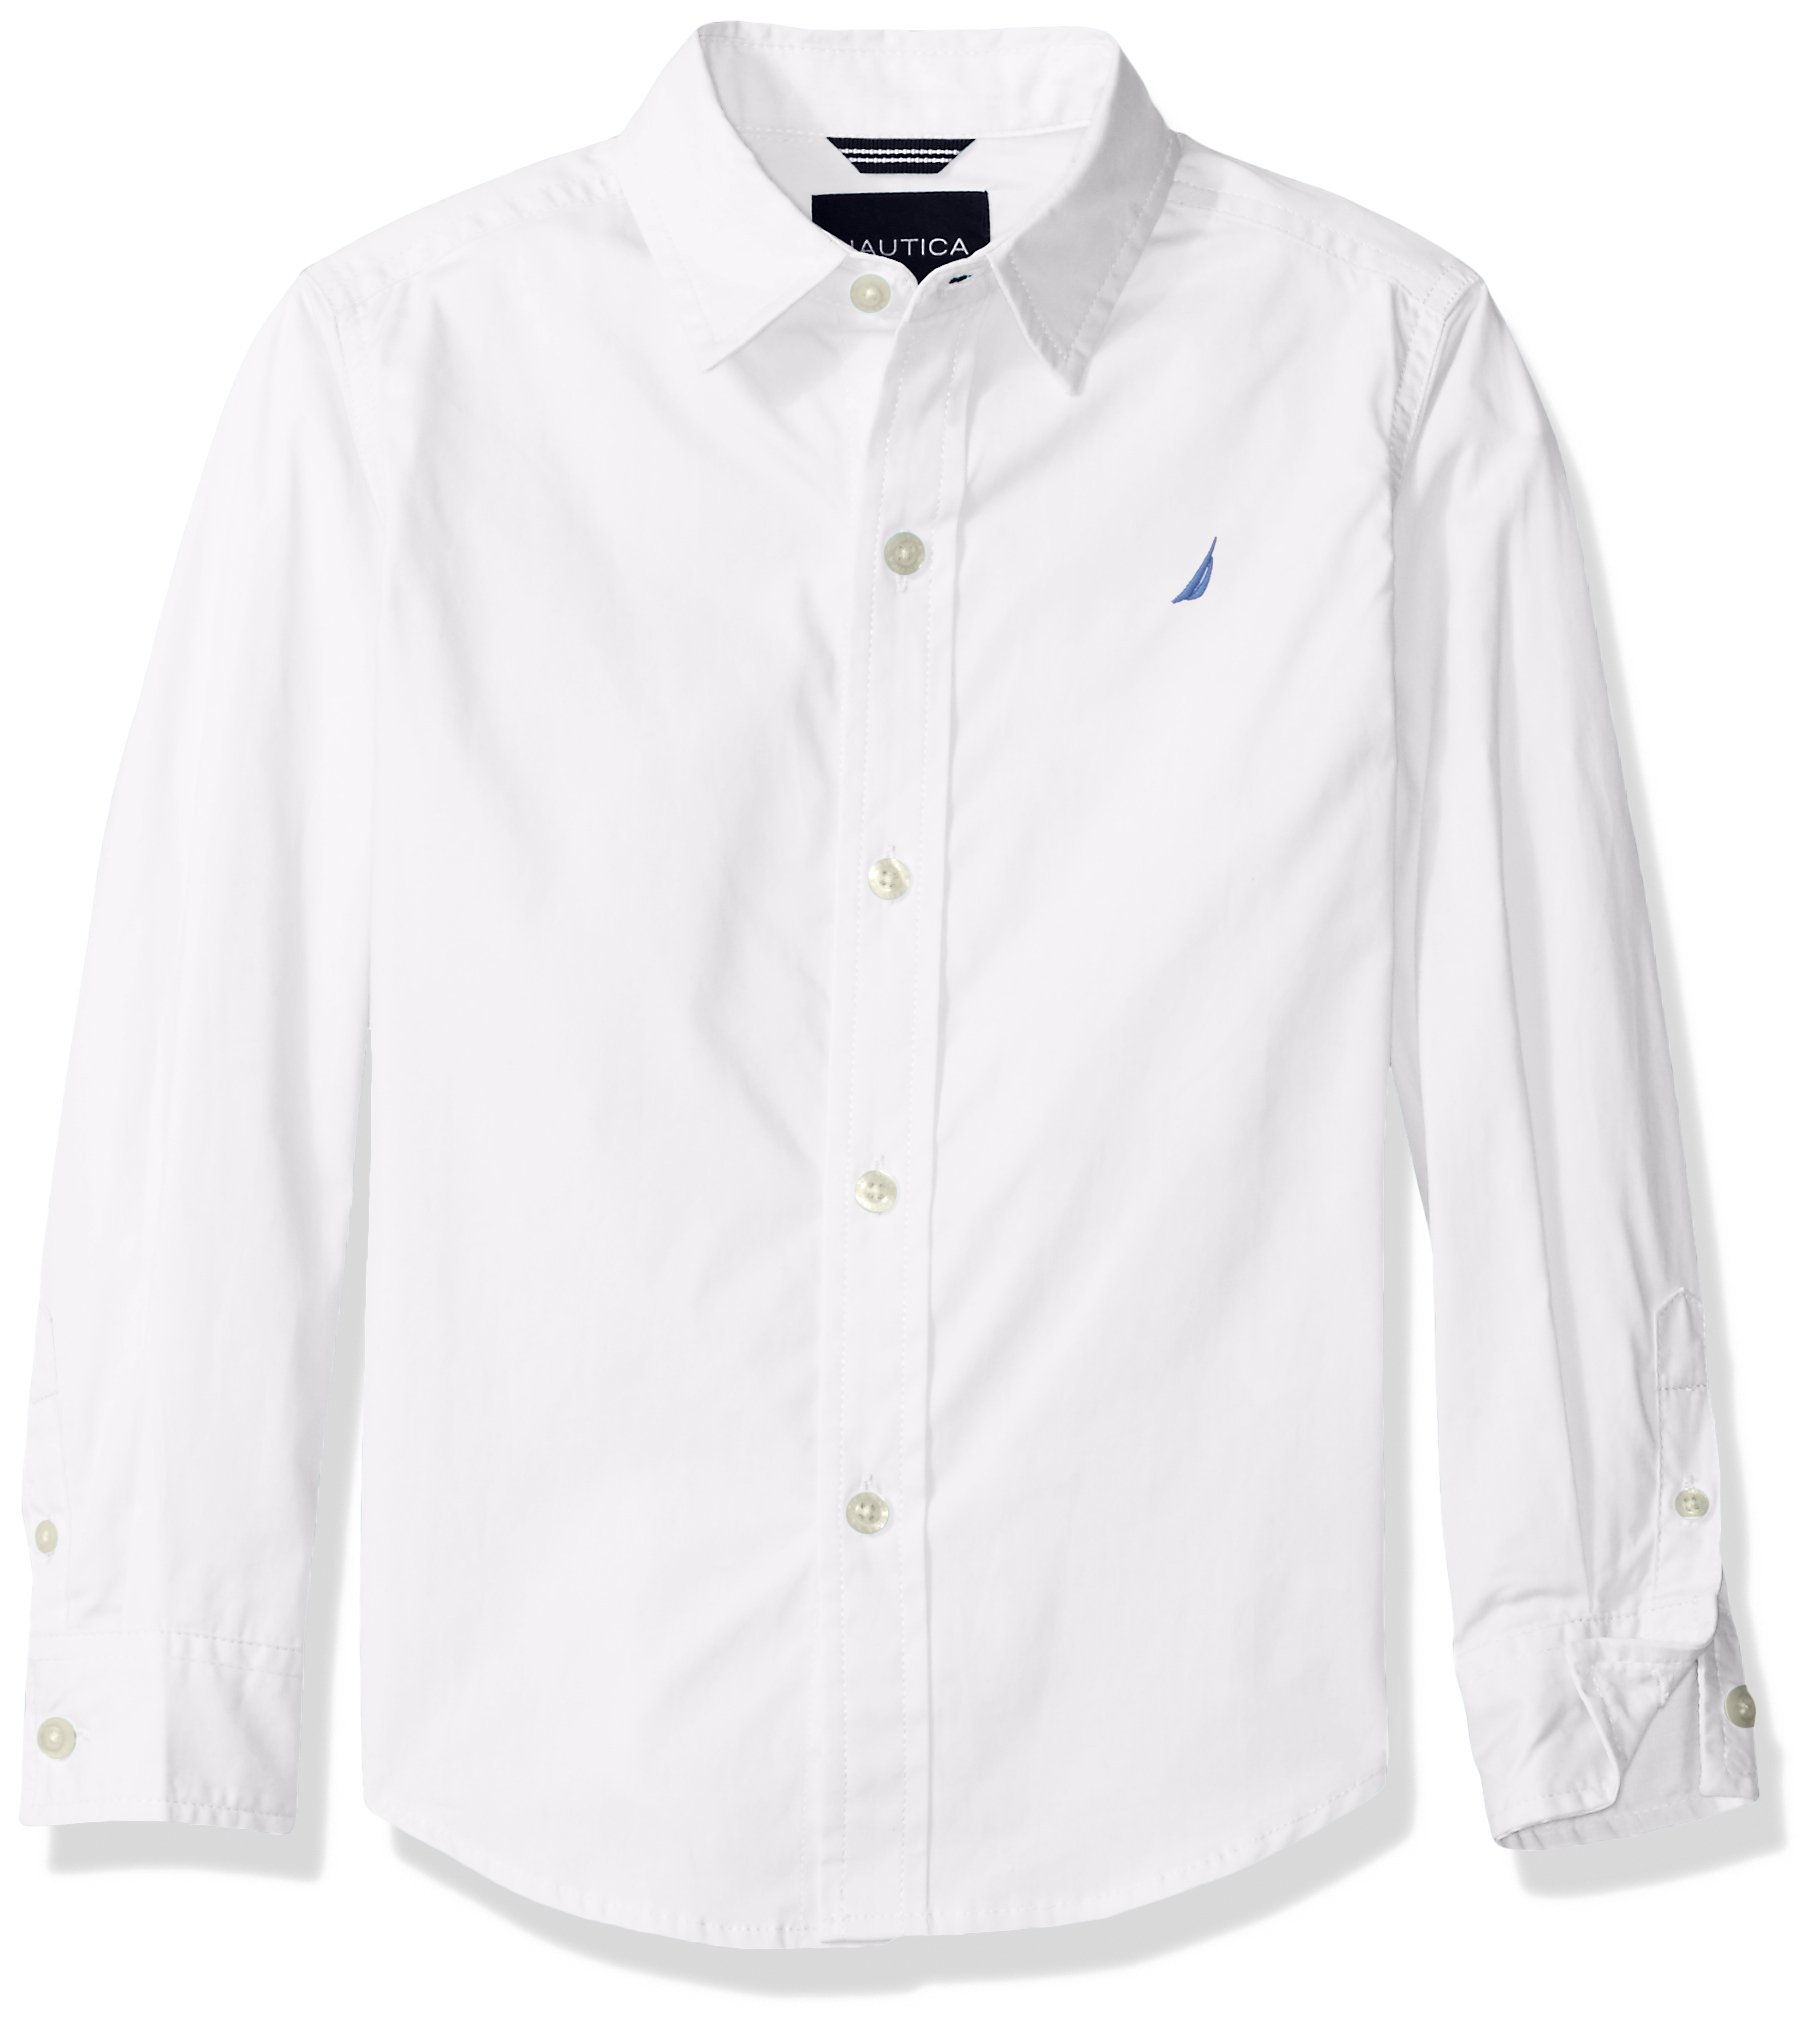 Nautica Little Boys' Long Sleeve Solid Woven Shirt, White, Extra Large (7X)